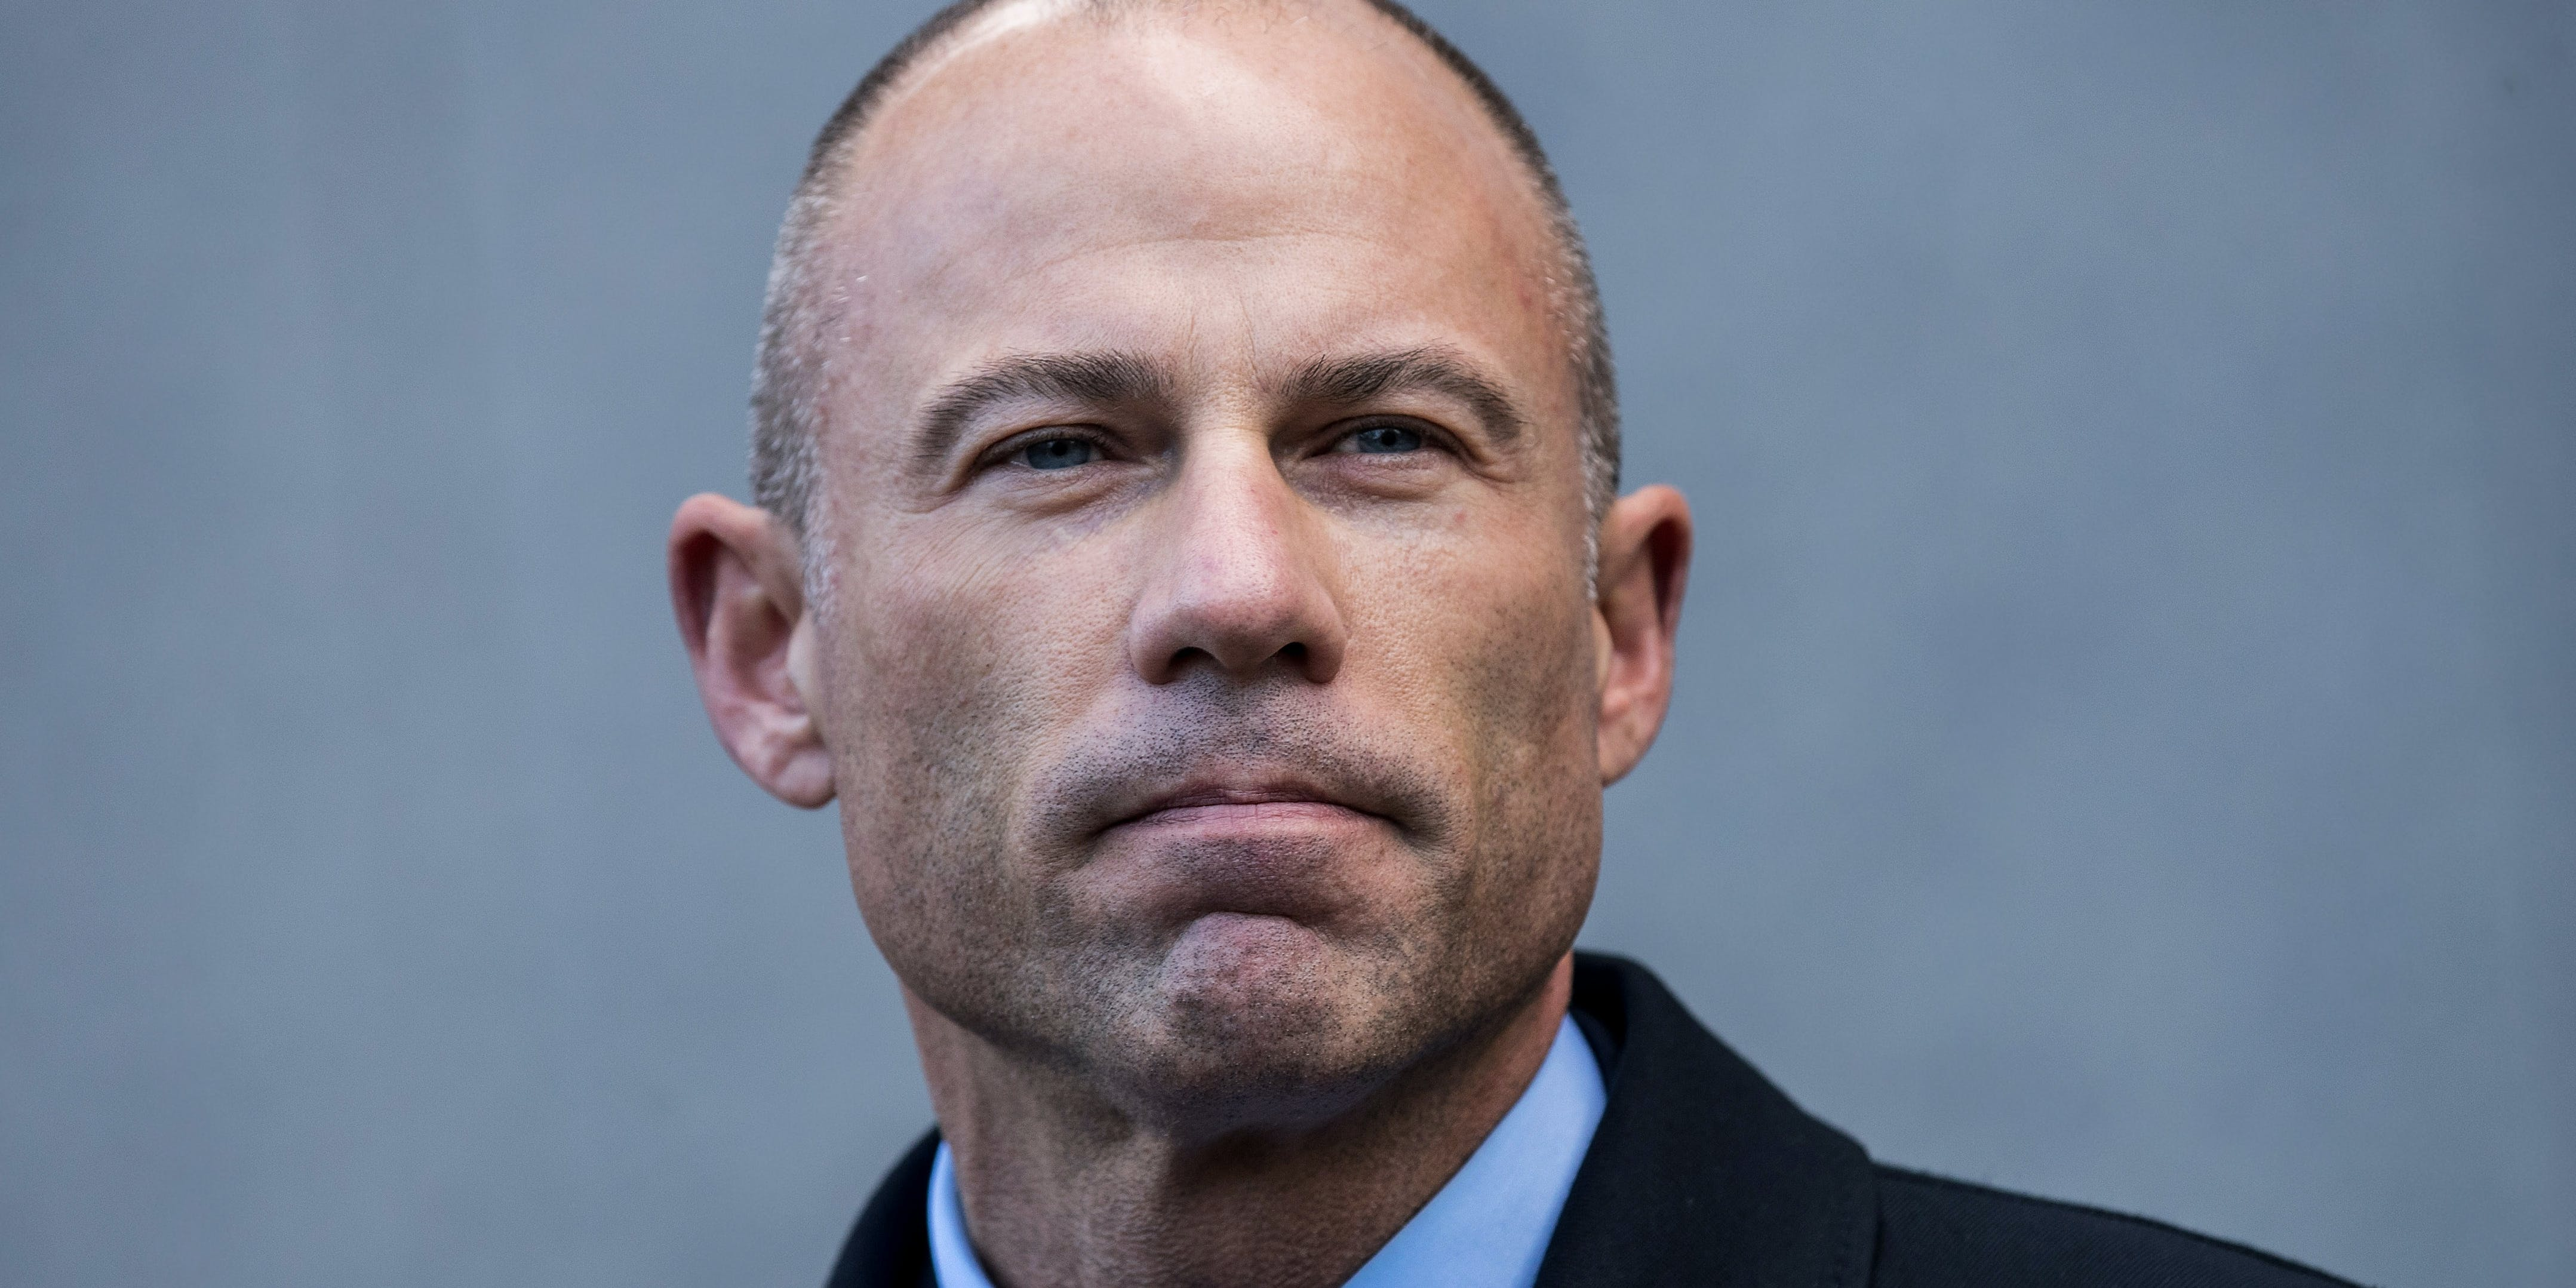 NEW YORK, NY - APRIL 16: Michael Avenatti, attorney for Stormy Daniels, speaks to reporters as he exits the United States District Court Southern District of New York for a hearing related to Michael Cohen, President Trump's longtime personal attorney and confidante, April 16, 2018 in New York City. (Photo by Drew Angerer/Getty Images)